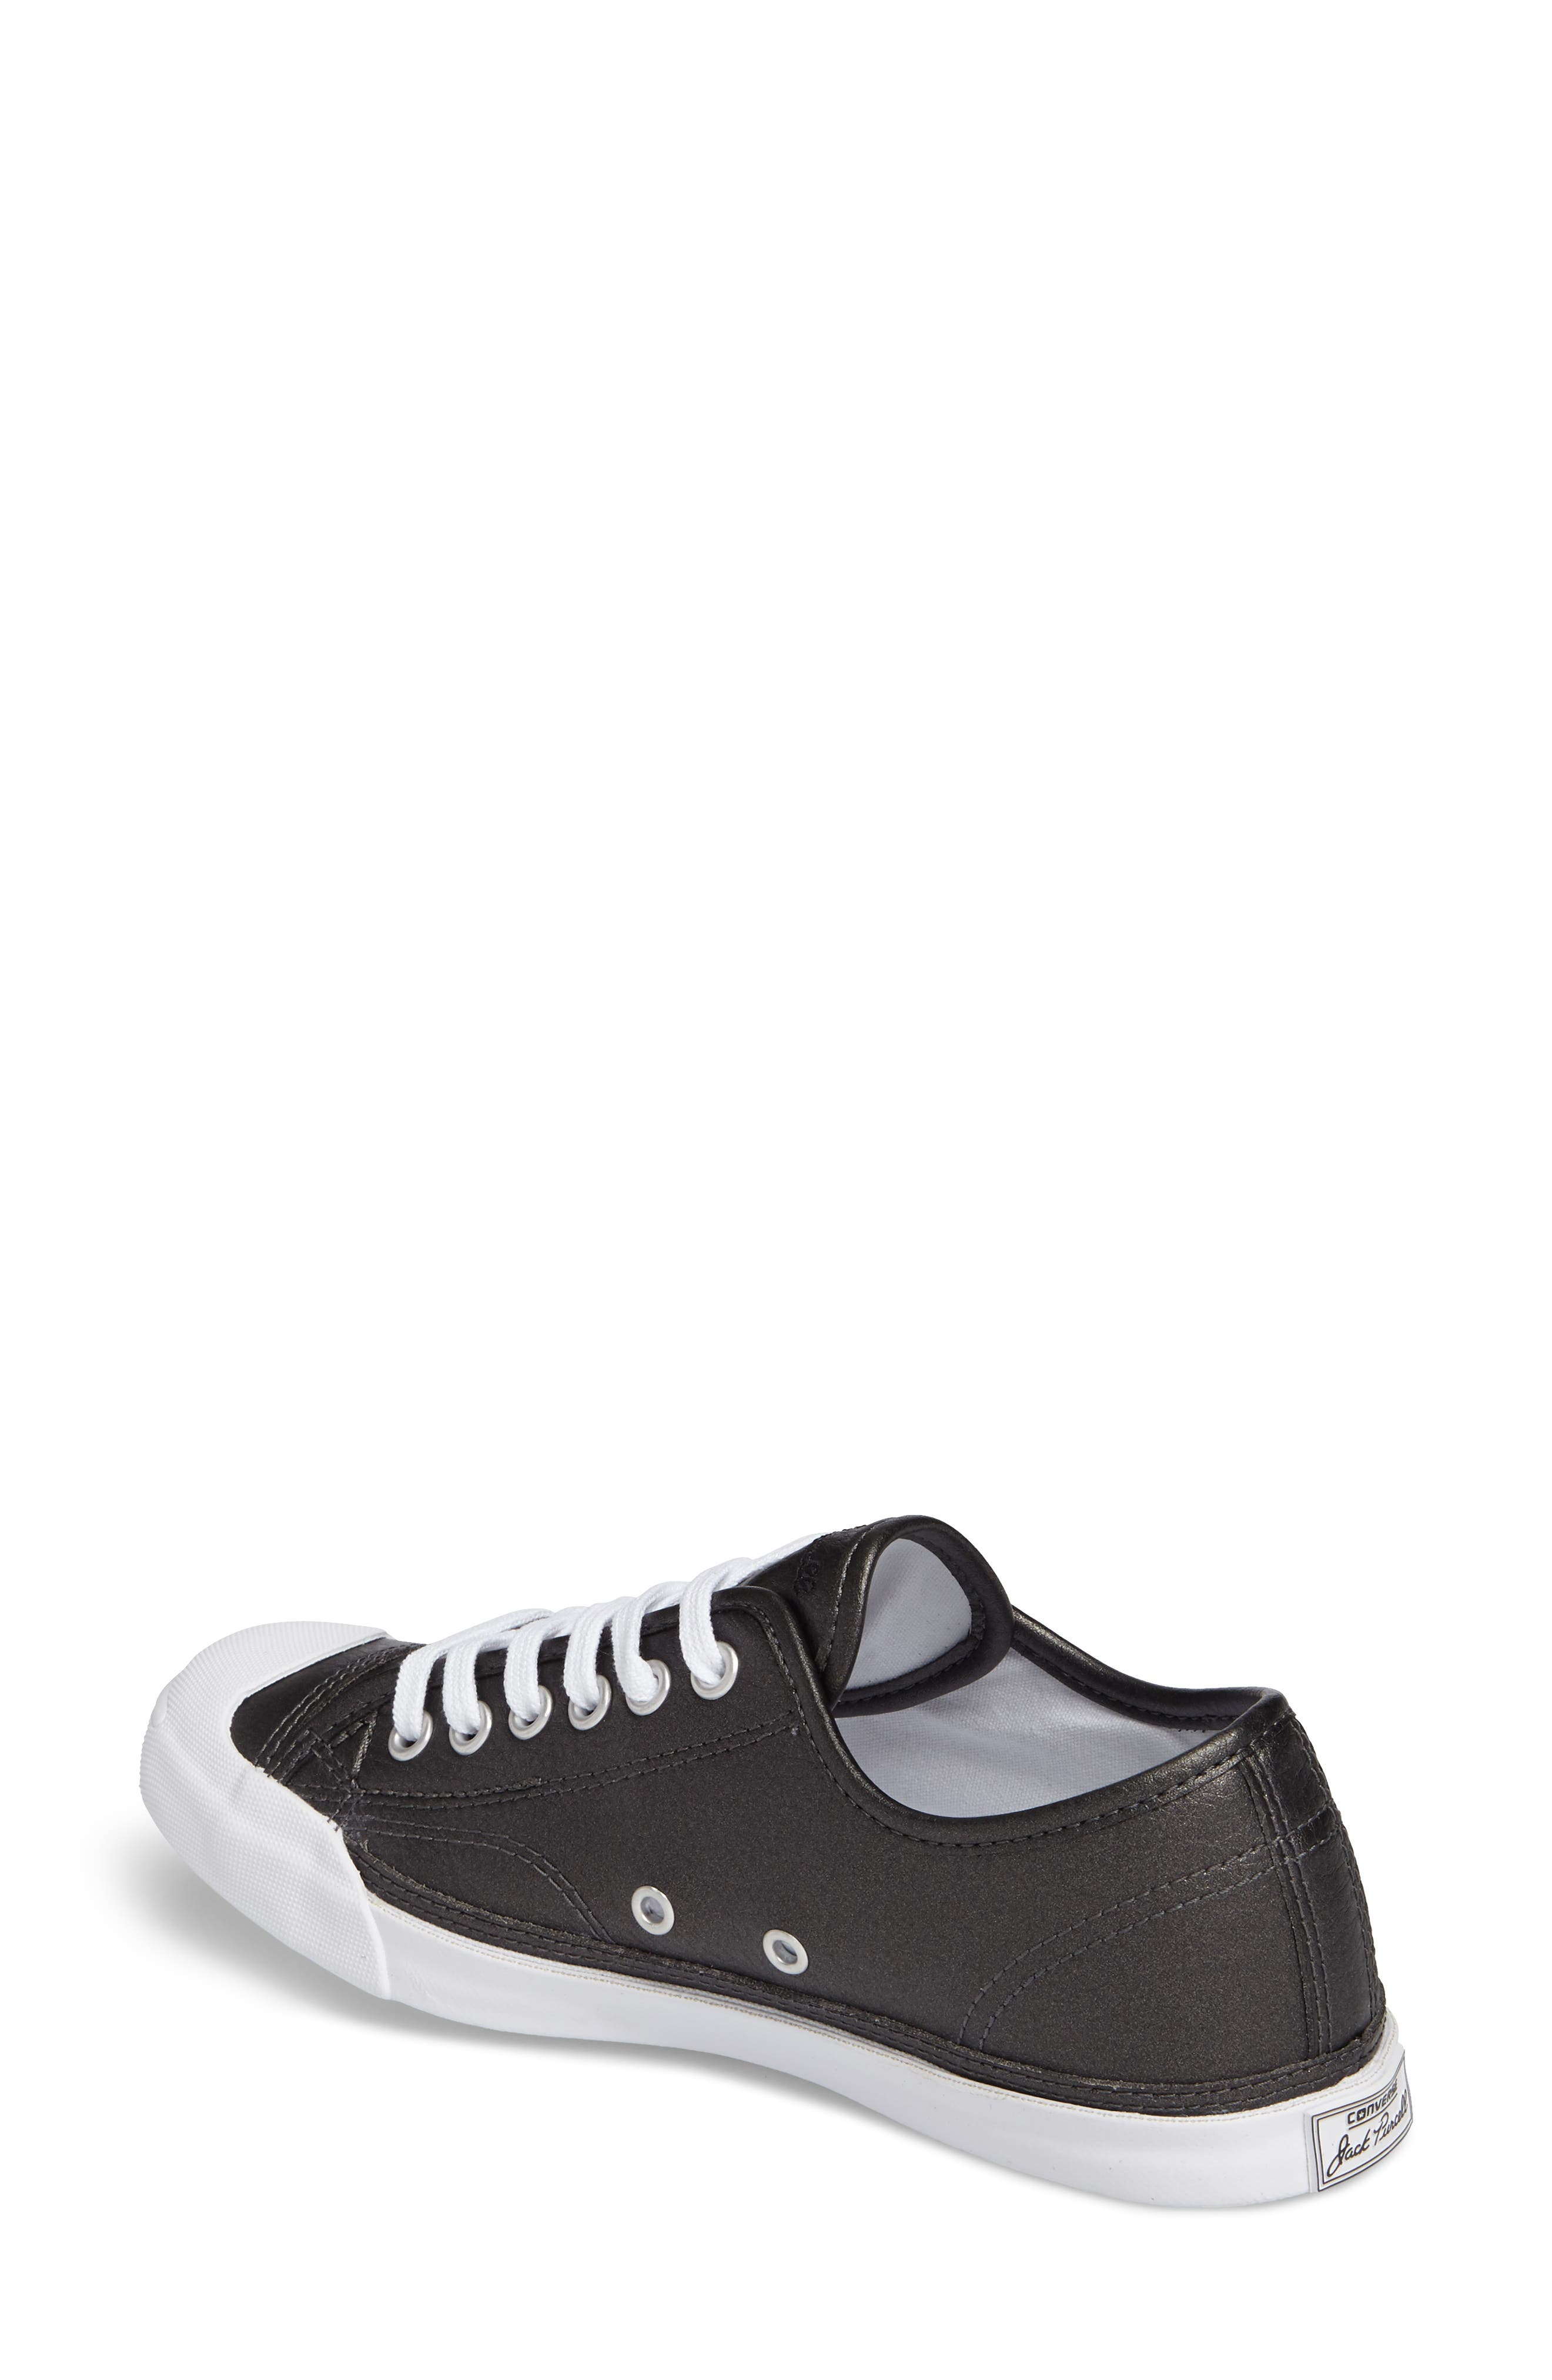 Jack Purcell Low Top Sneaker,                             Alternate thumbnail 2, color,                             001